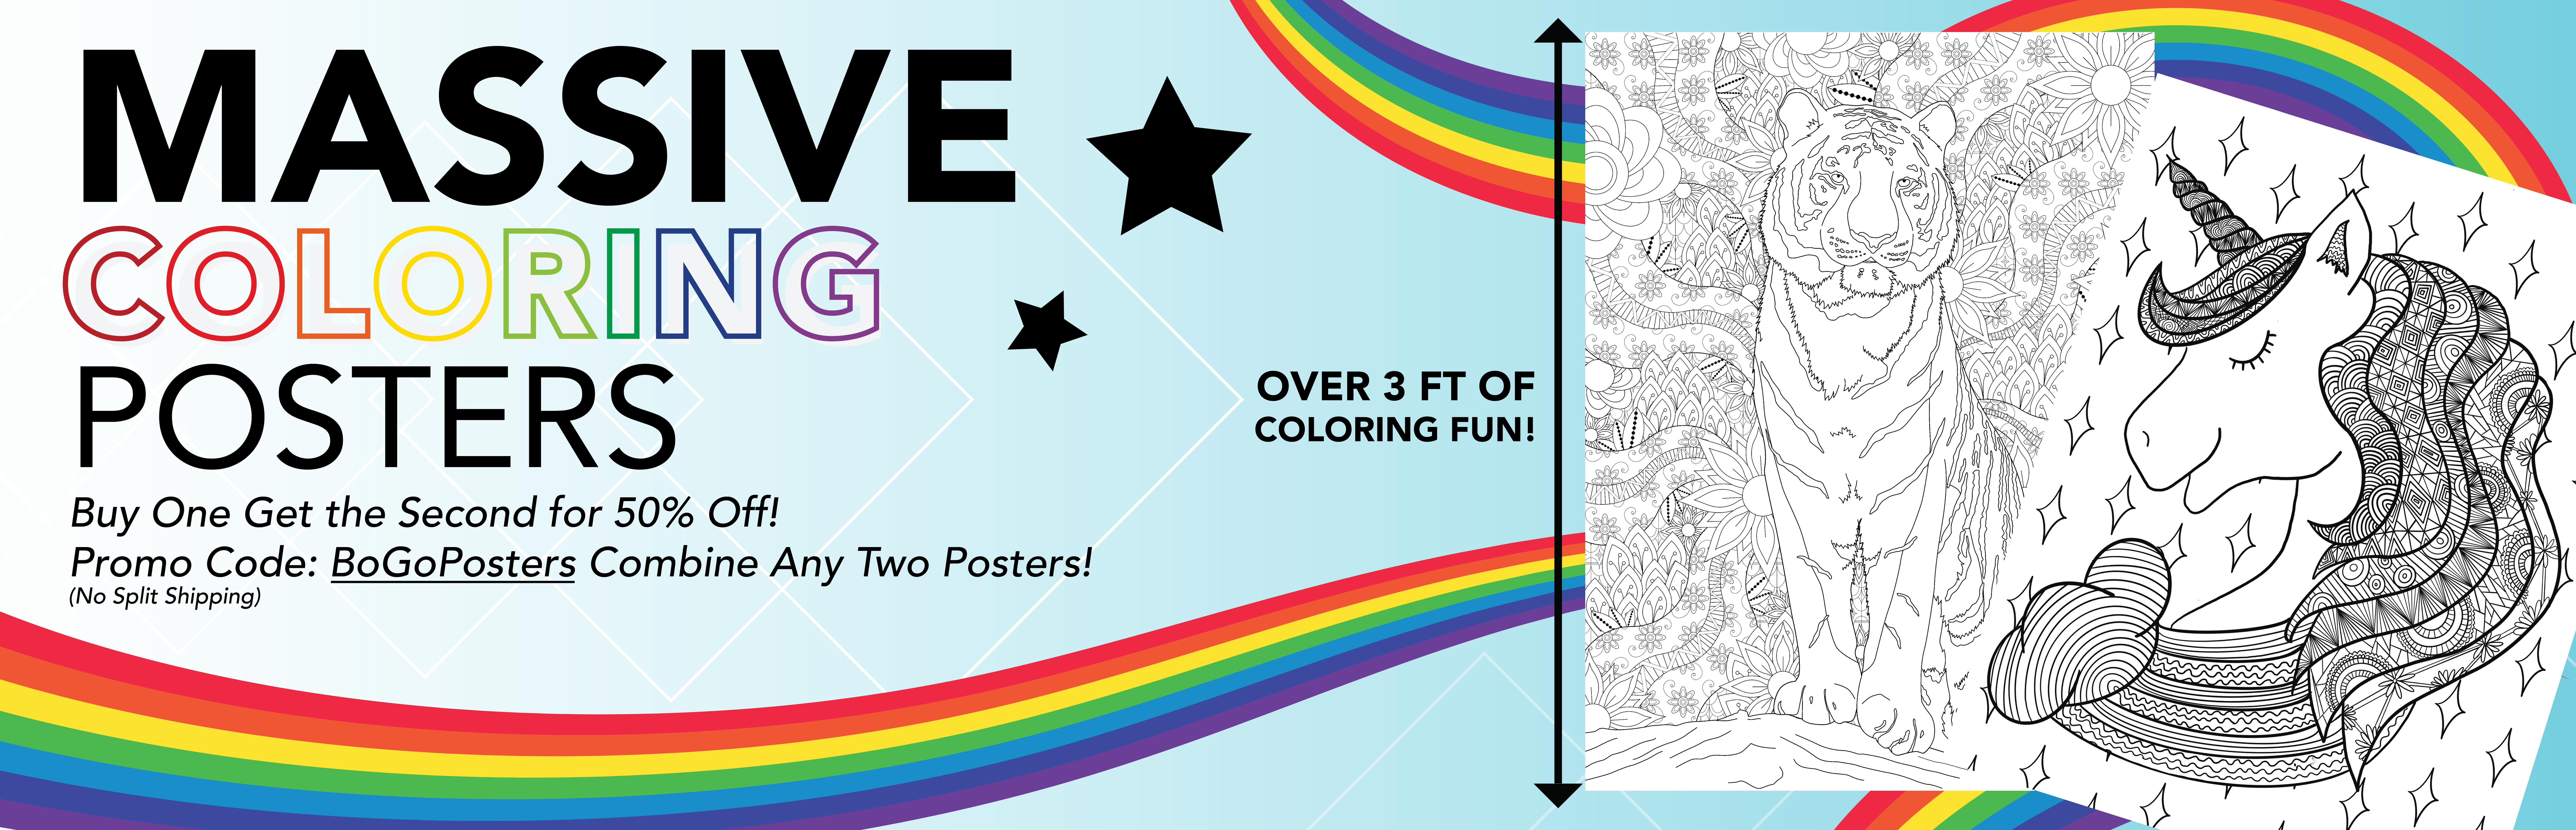 Massive Coloring Posters